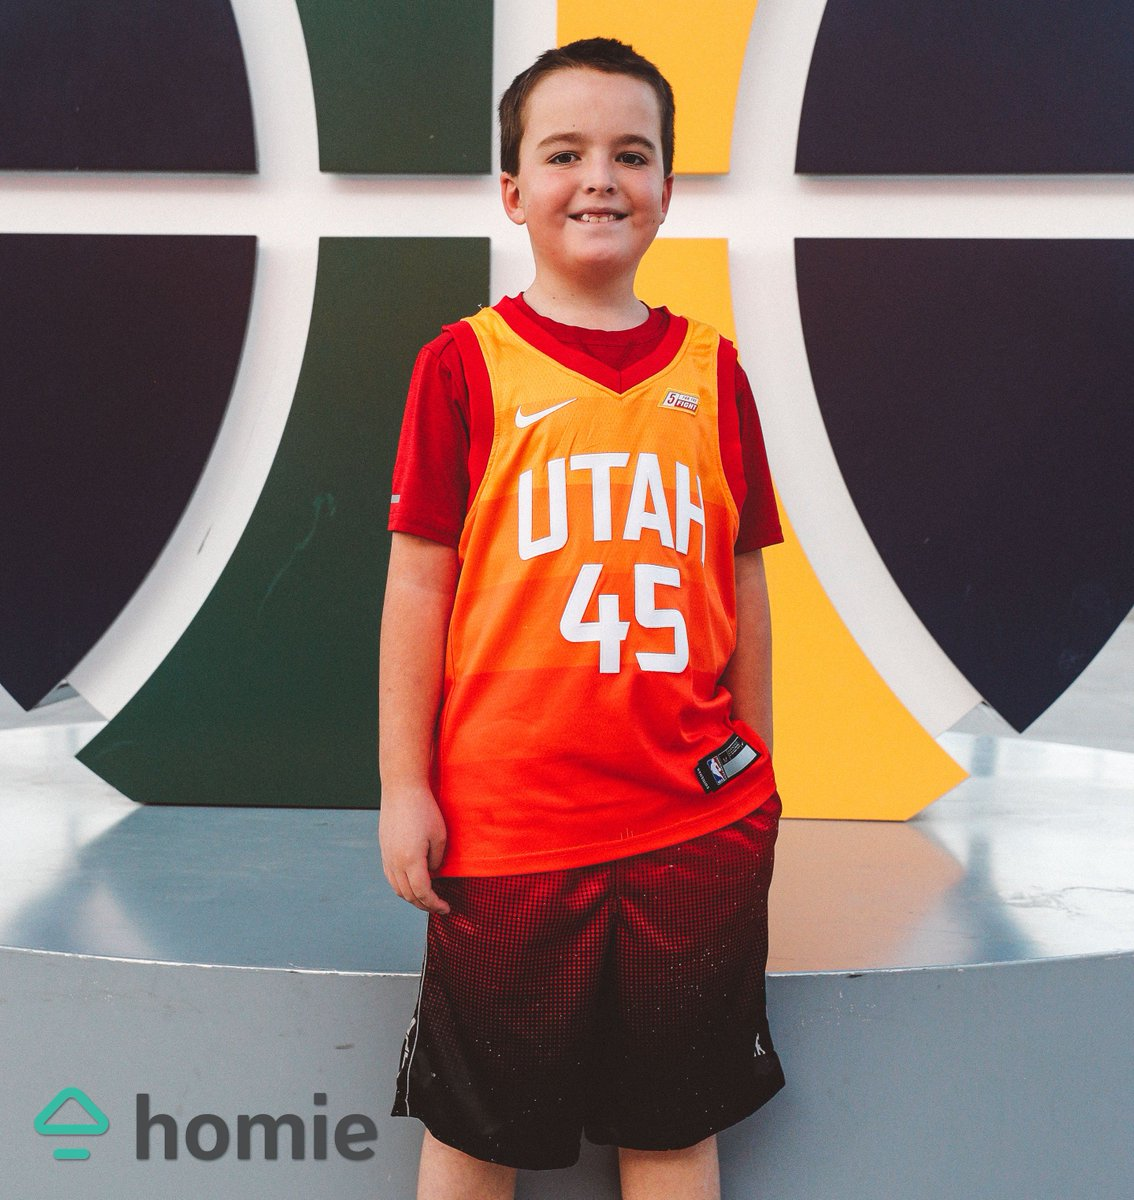 """""""I love the Jazz because they're my hometown team. We watch a lot of games as a family. I like Mike Conley and Joe Ingles and Donovan Mitchell. I like Donovan's dunks. I hope we win a championship."""" — Bridger Buchanan  #ForeverJazz   @TryHomie"""